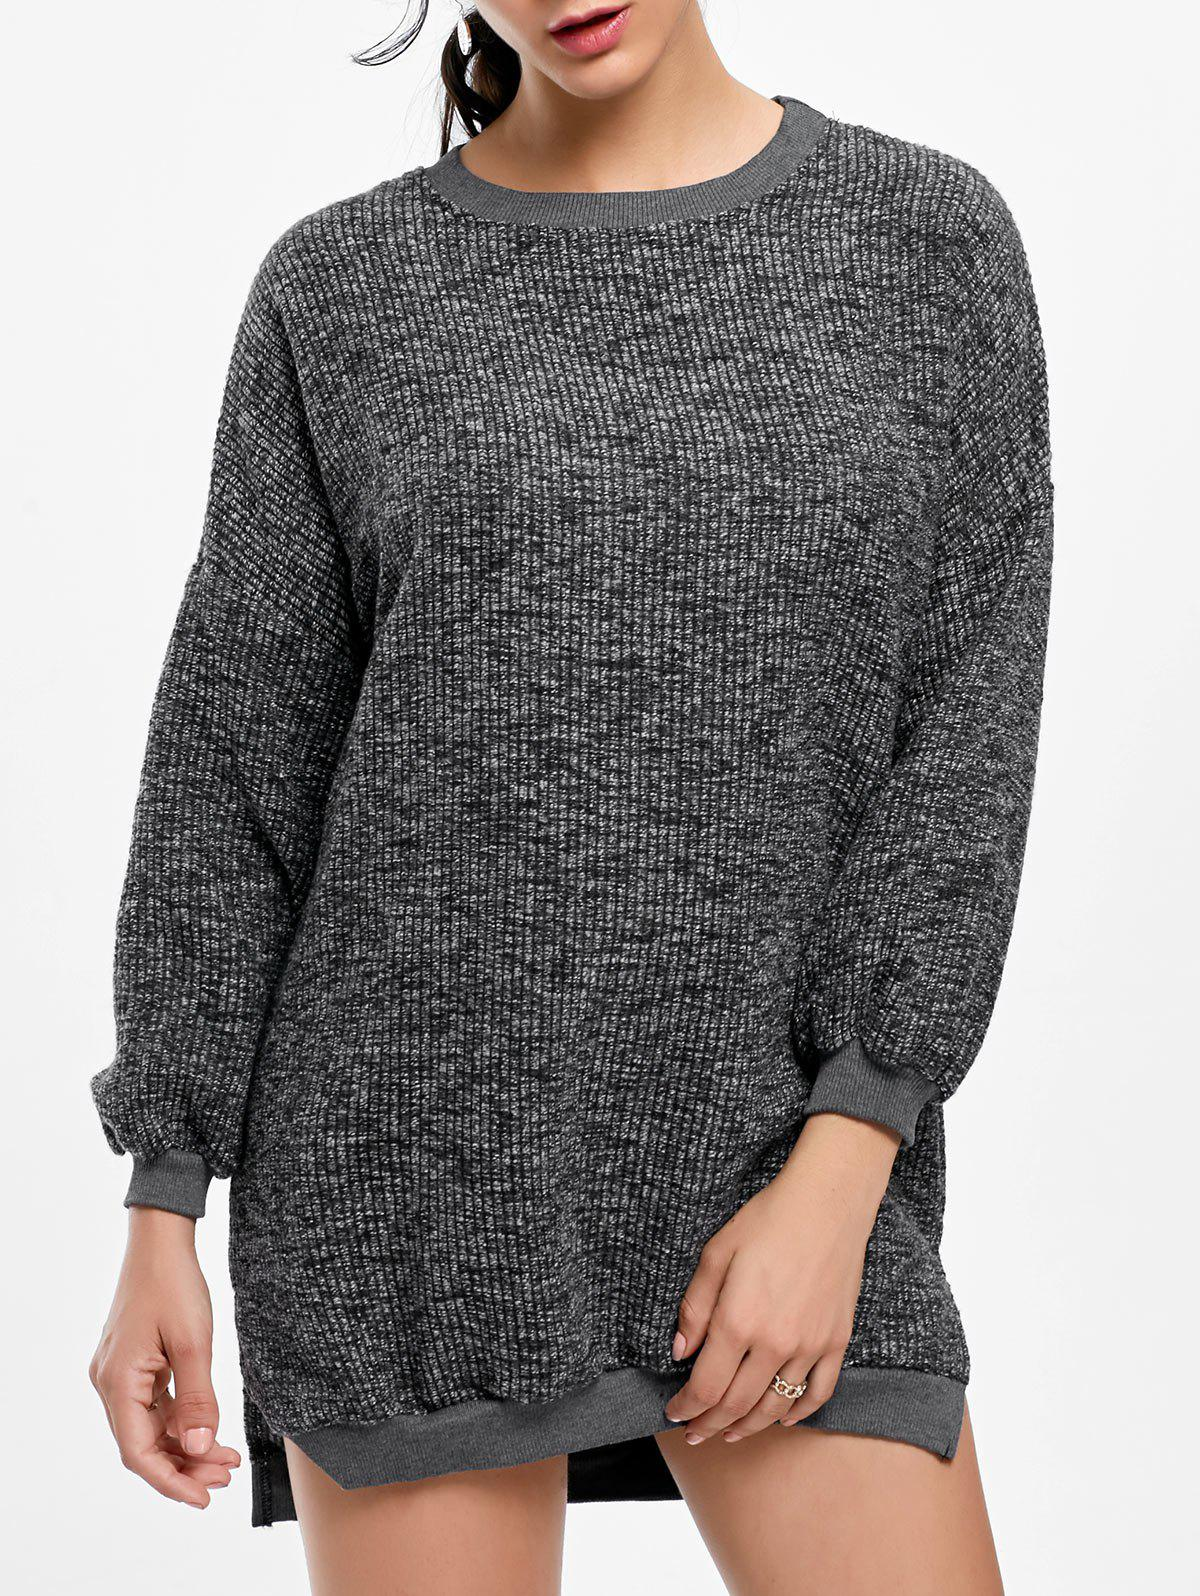 Crew Neck Slit Ribbed Sweater Dress - GRAY ONE SIZE